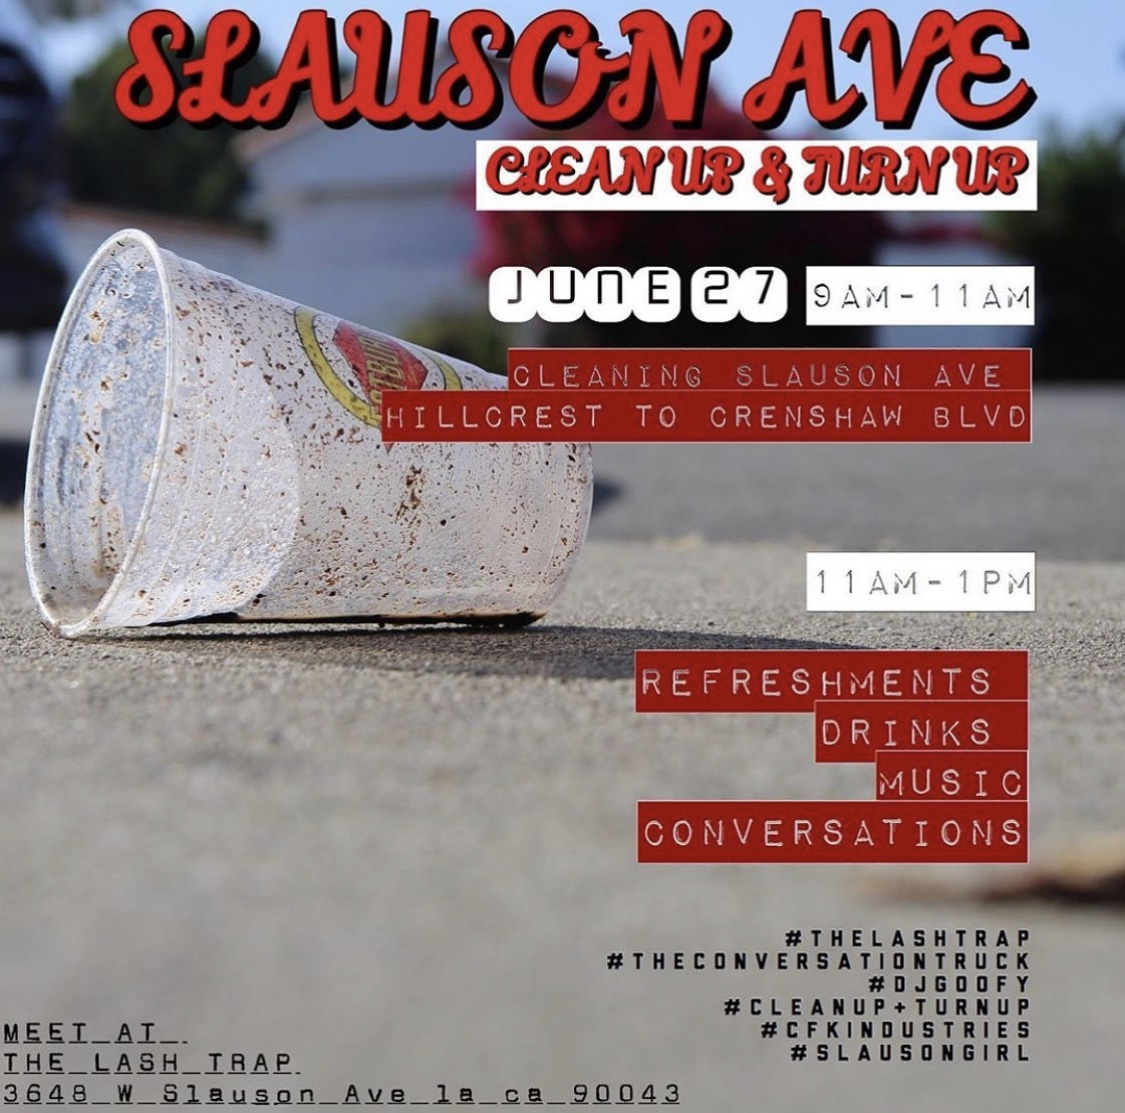 Slauson Ave Clean up